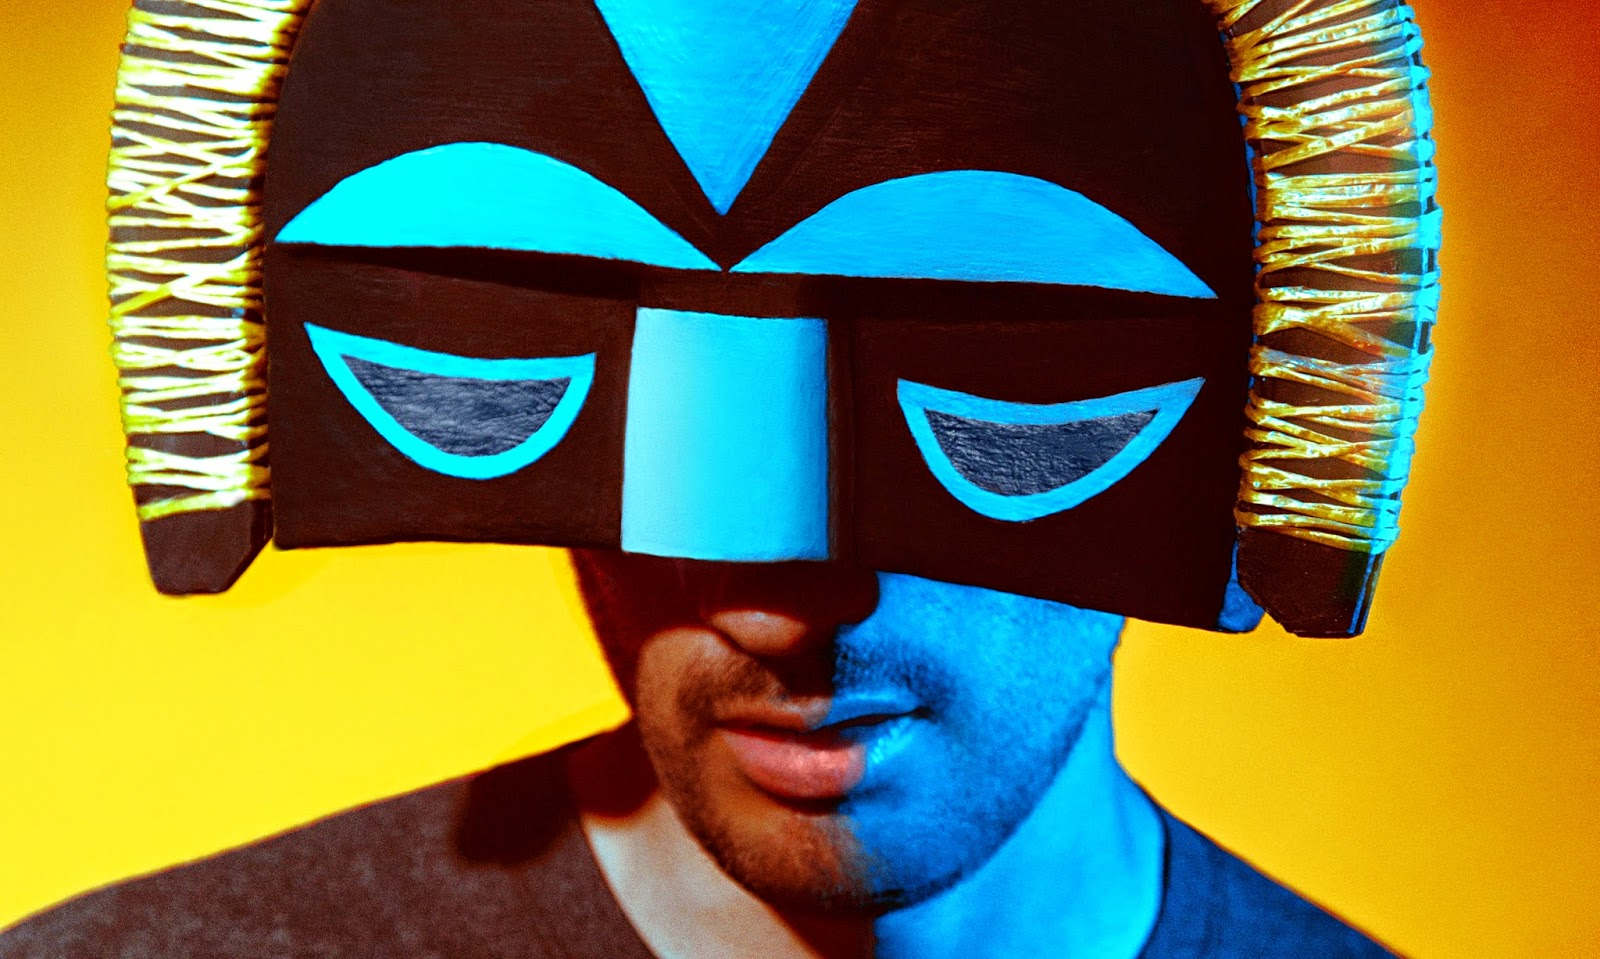 New songs from SBTRKT